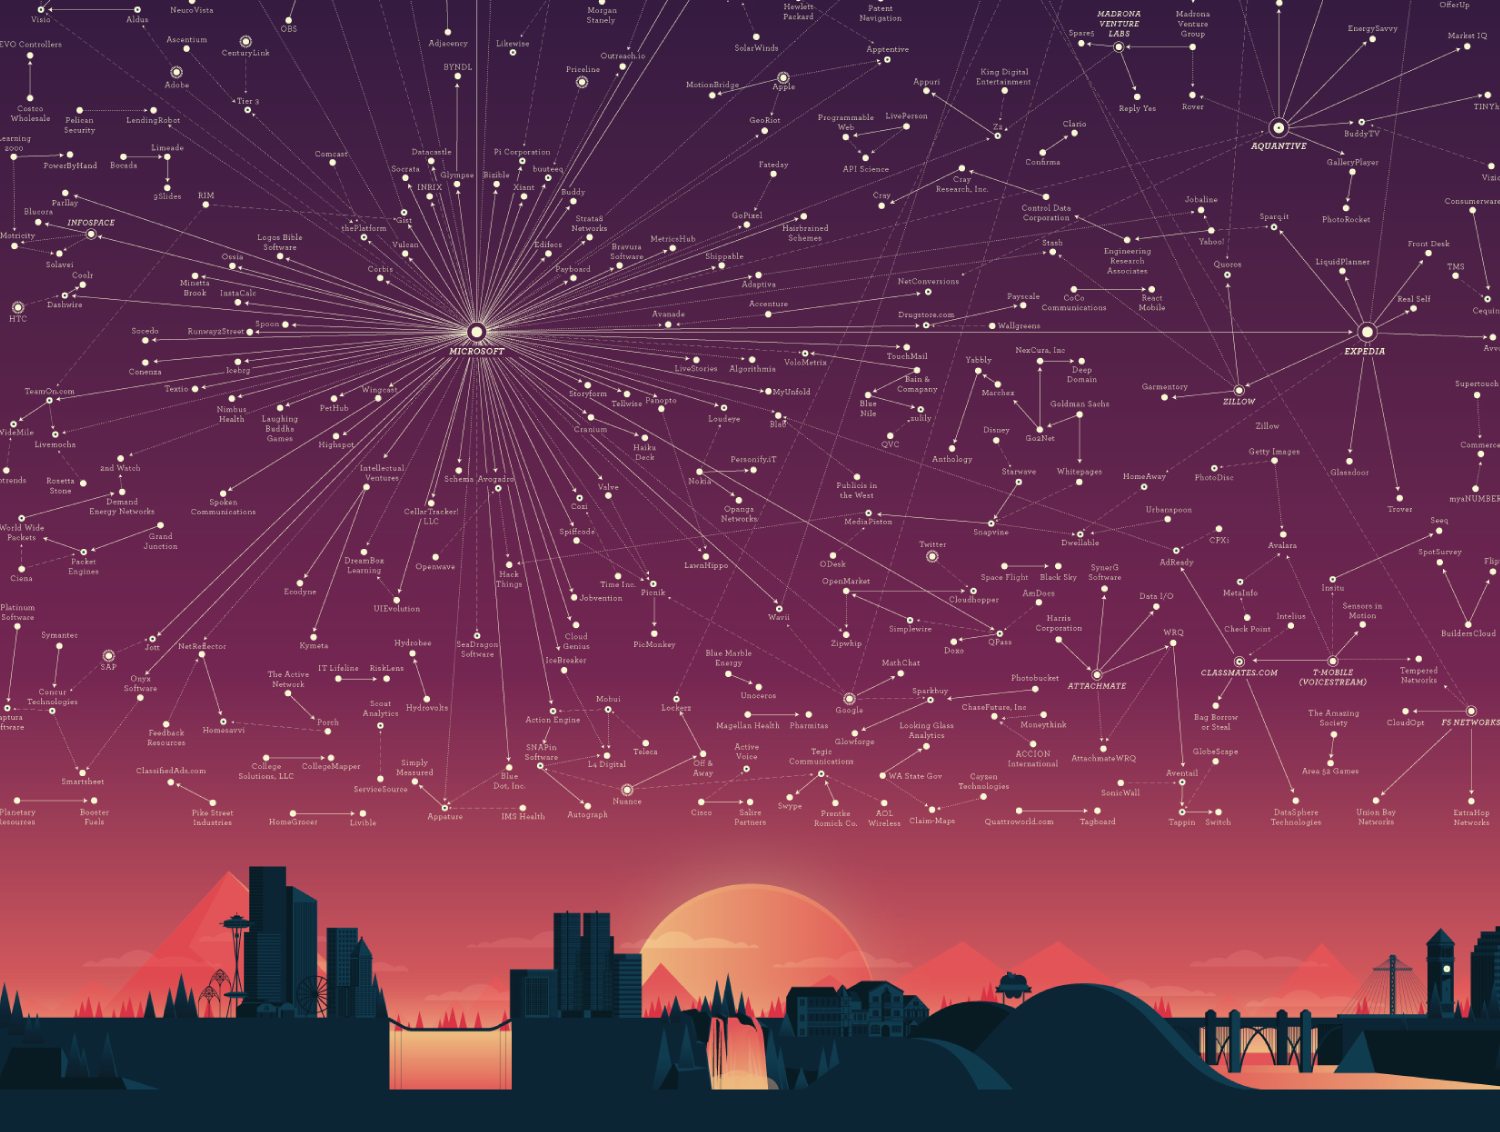 The Seattle Tech Universe - A poster designed for WTIA, illustrating tech community within Washington state. The goal was to capture the complexity and expansiveness of the tech scene while showing the different relationships between companies.